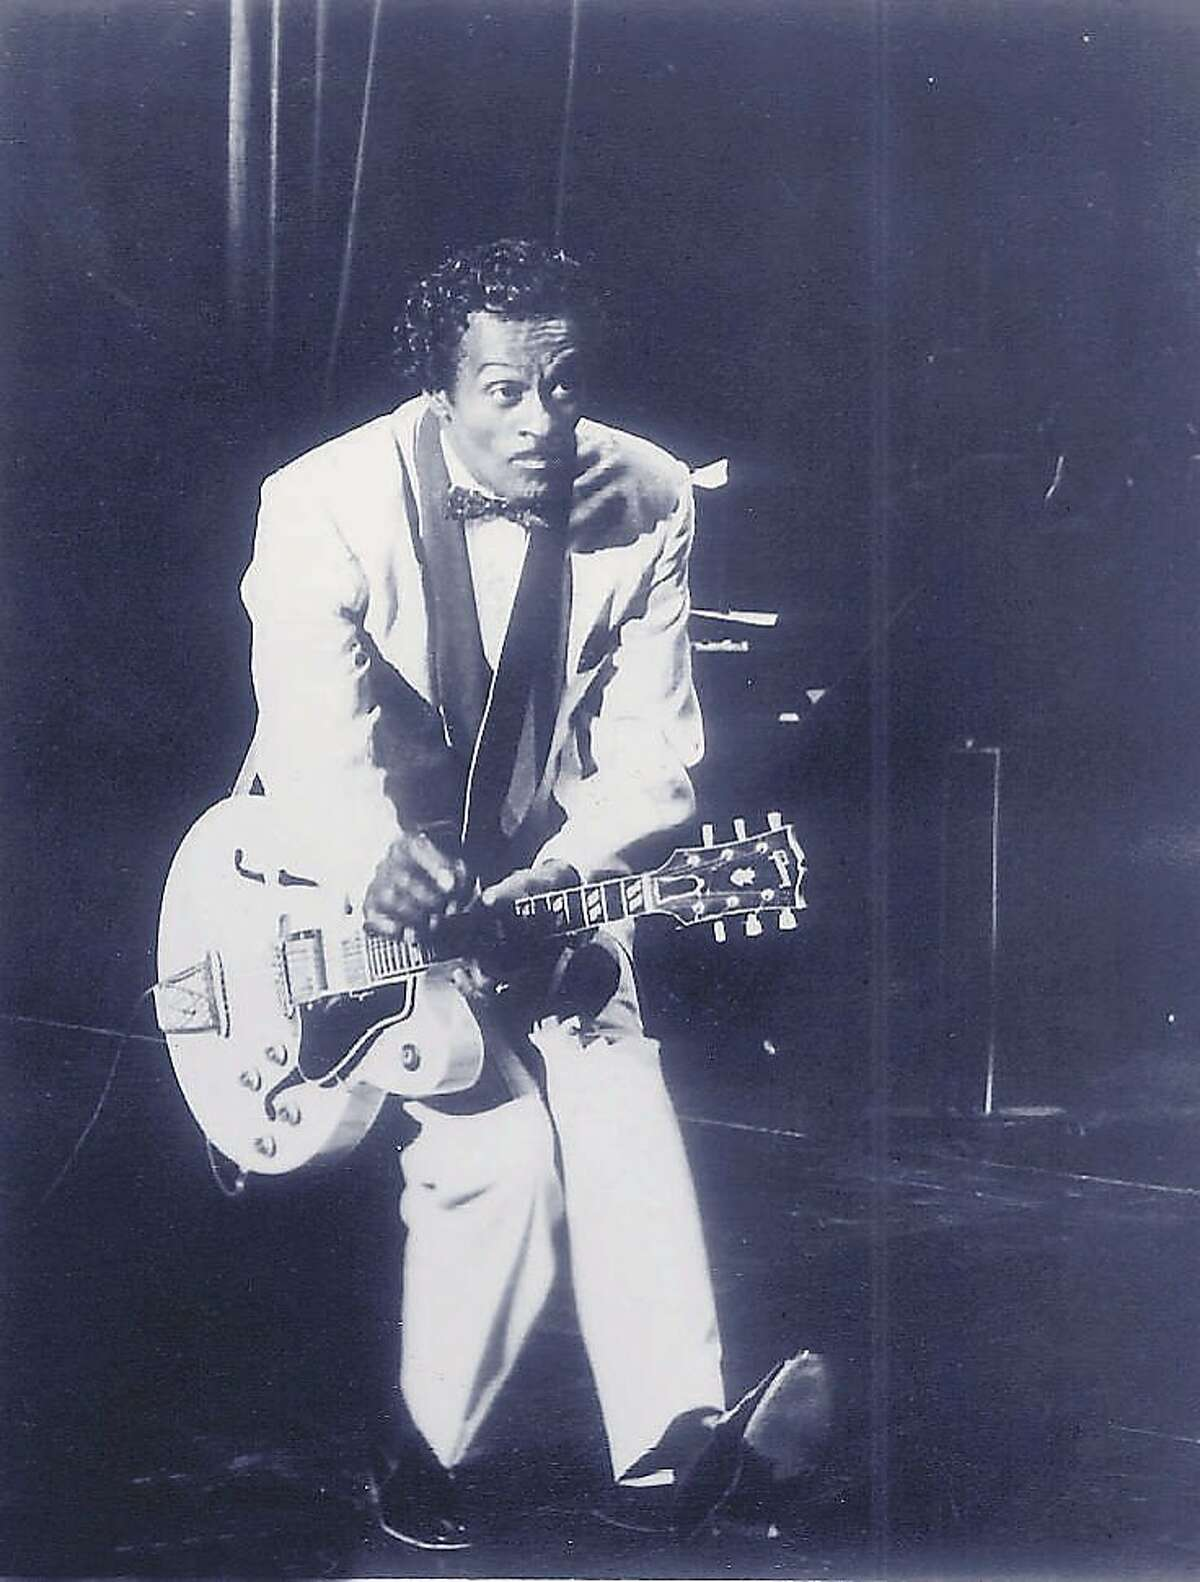 KRT KIDS NEWS STORY SLUGGED: BLUES KRT PHOTOGRAPH VIA CHIACGO TRIBUNE (KN12- November 19) Blues clue: The first lady loves a song by this legend. Who is it? (TB) AP PL KD 1999 (Vert) (lde) (At-Risk) -- NO MAGS, NO SALES -- CHUCK BERRY?